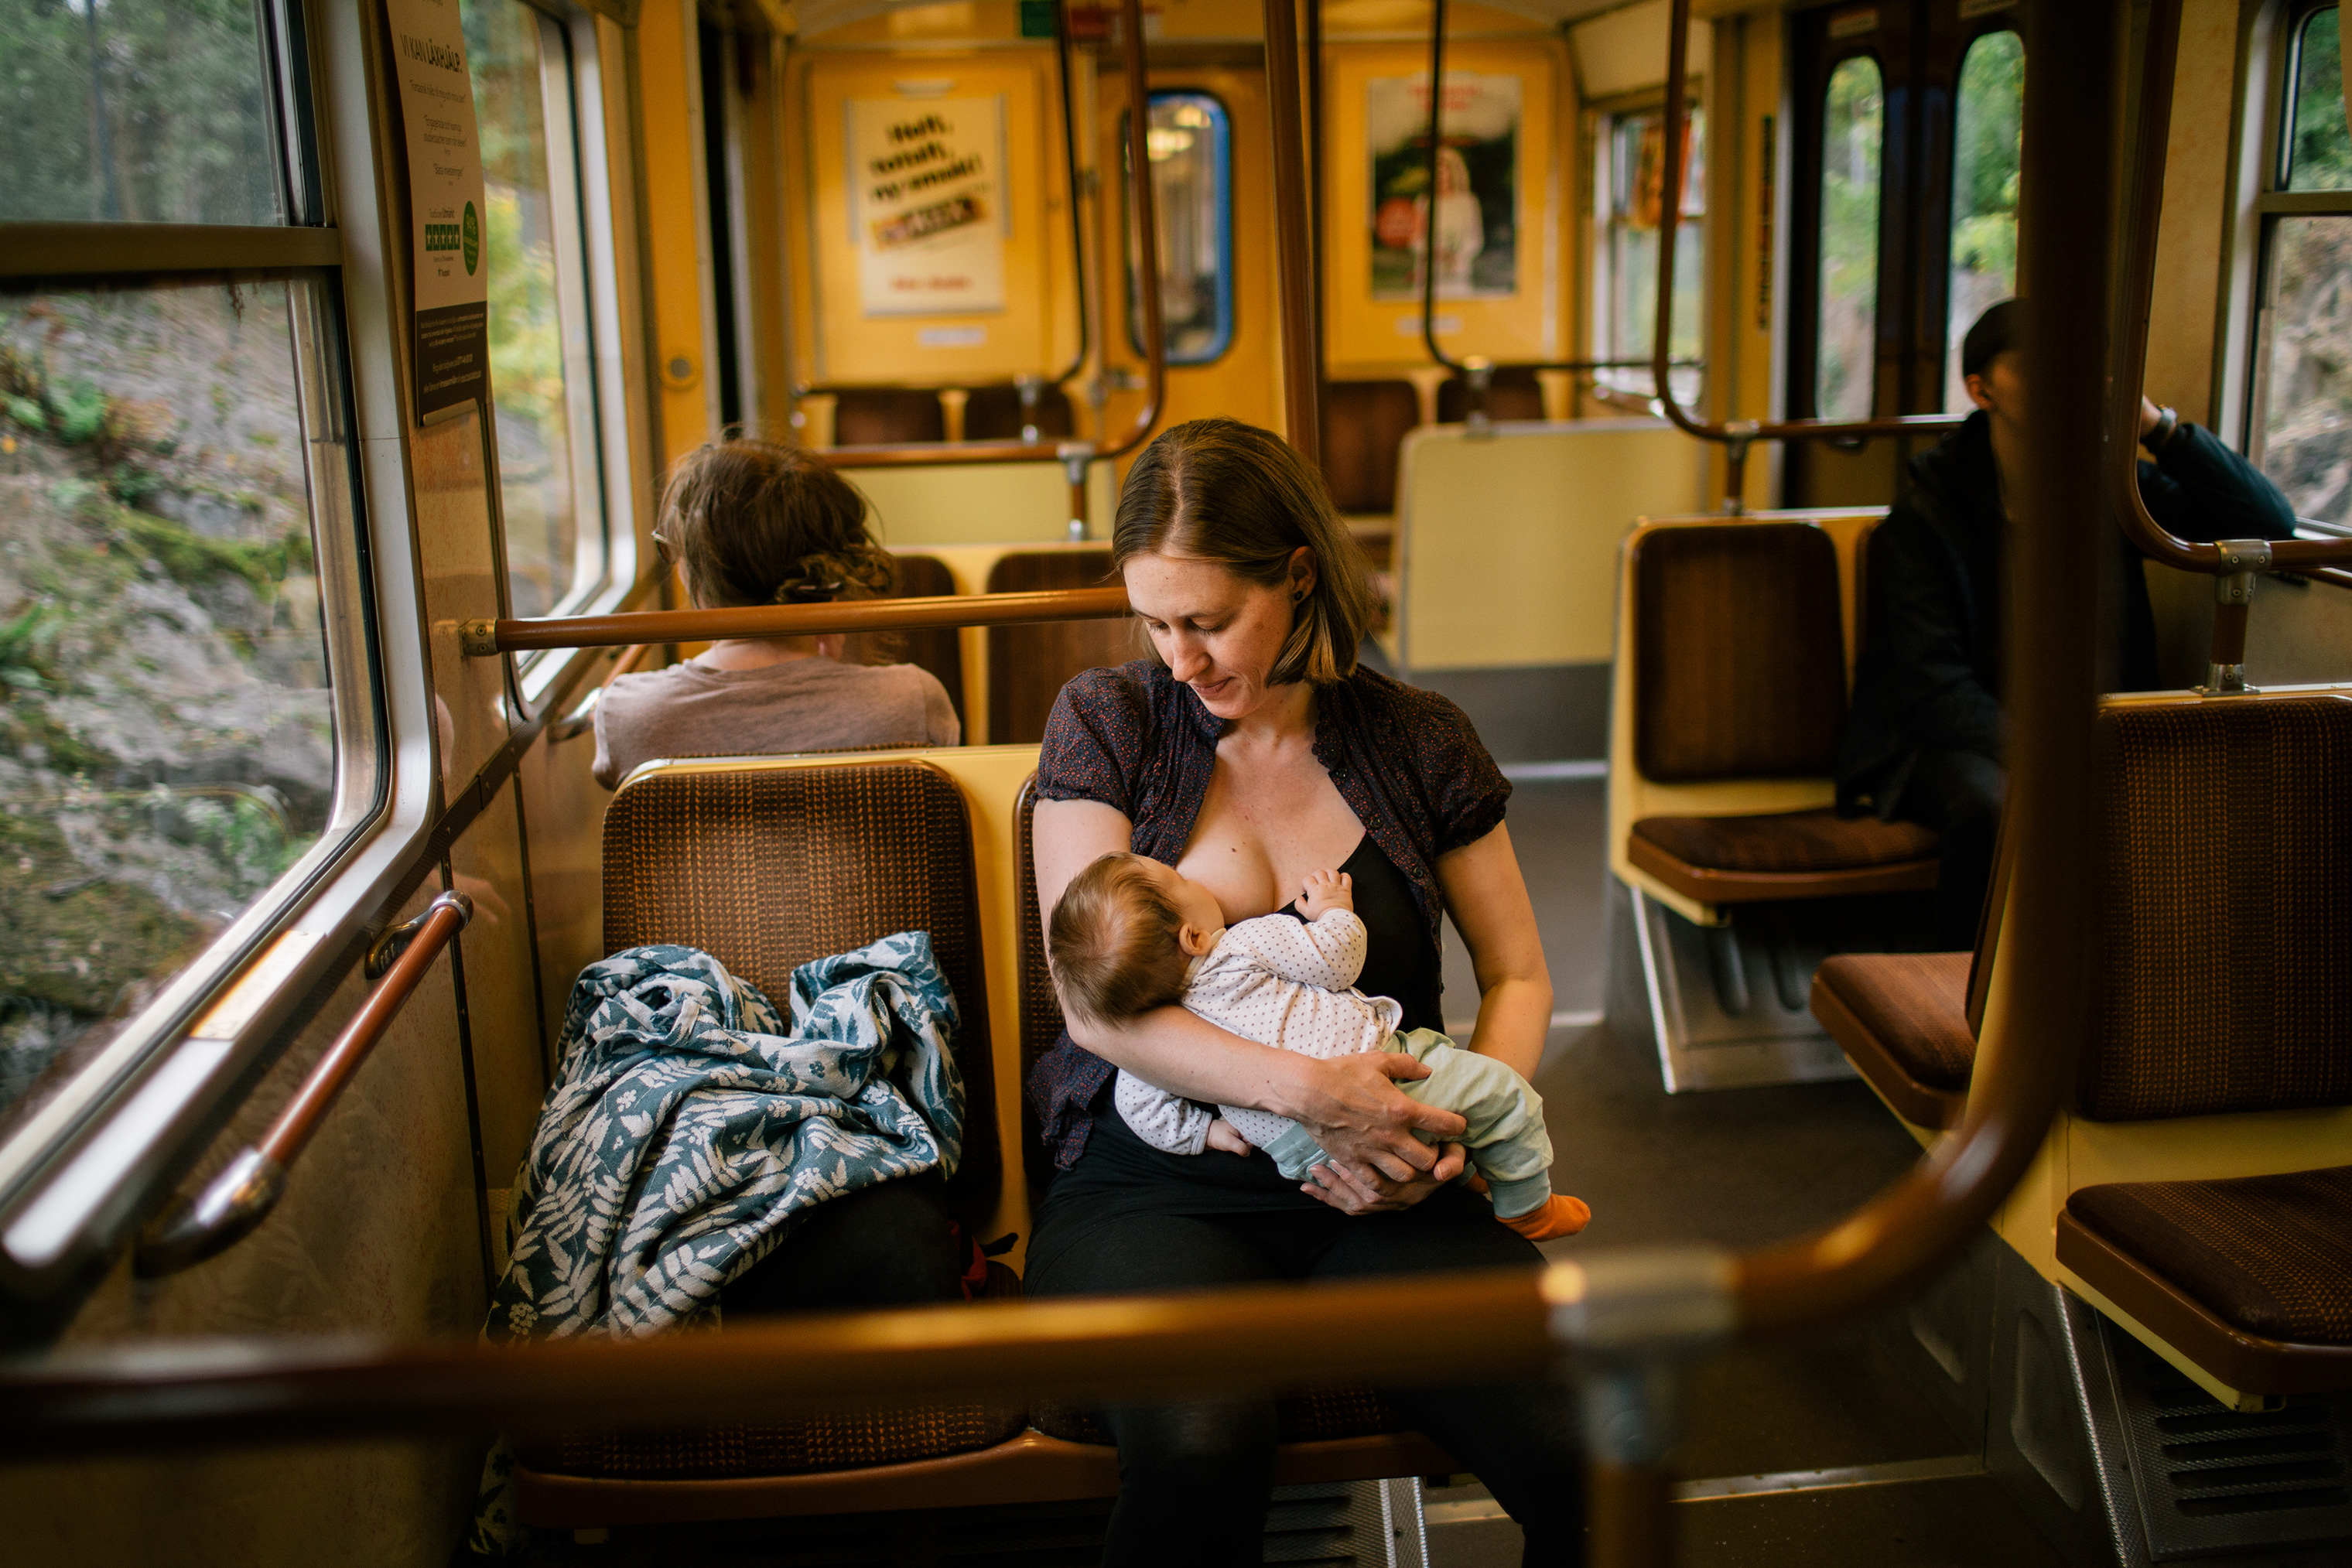 Ulrika Casselbrant, 38, breastfeeds her 8 week old child, Vera, on a commuter train in Stockholm on Aug. 19, 2018.